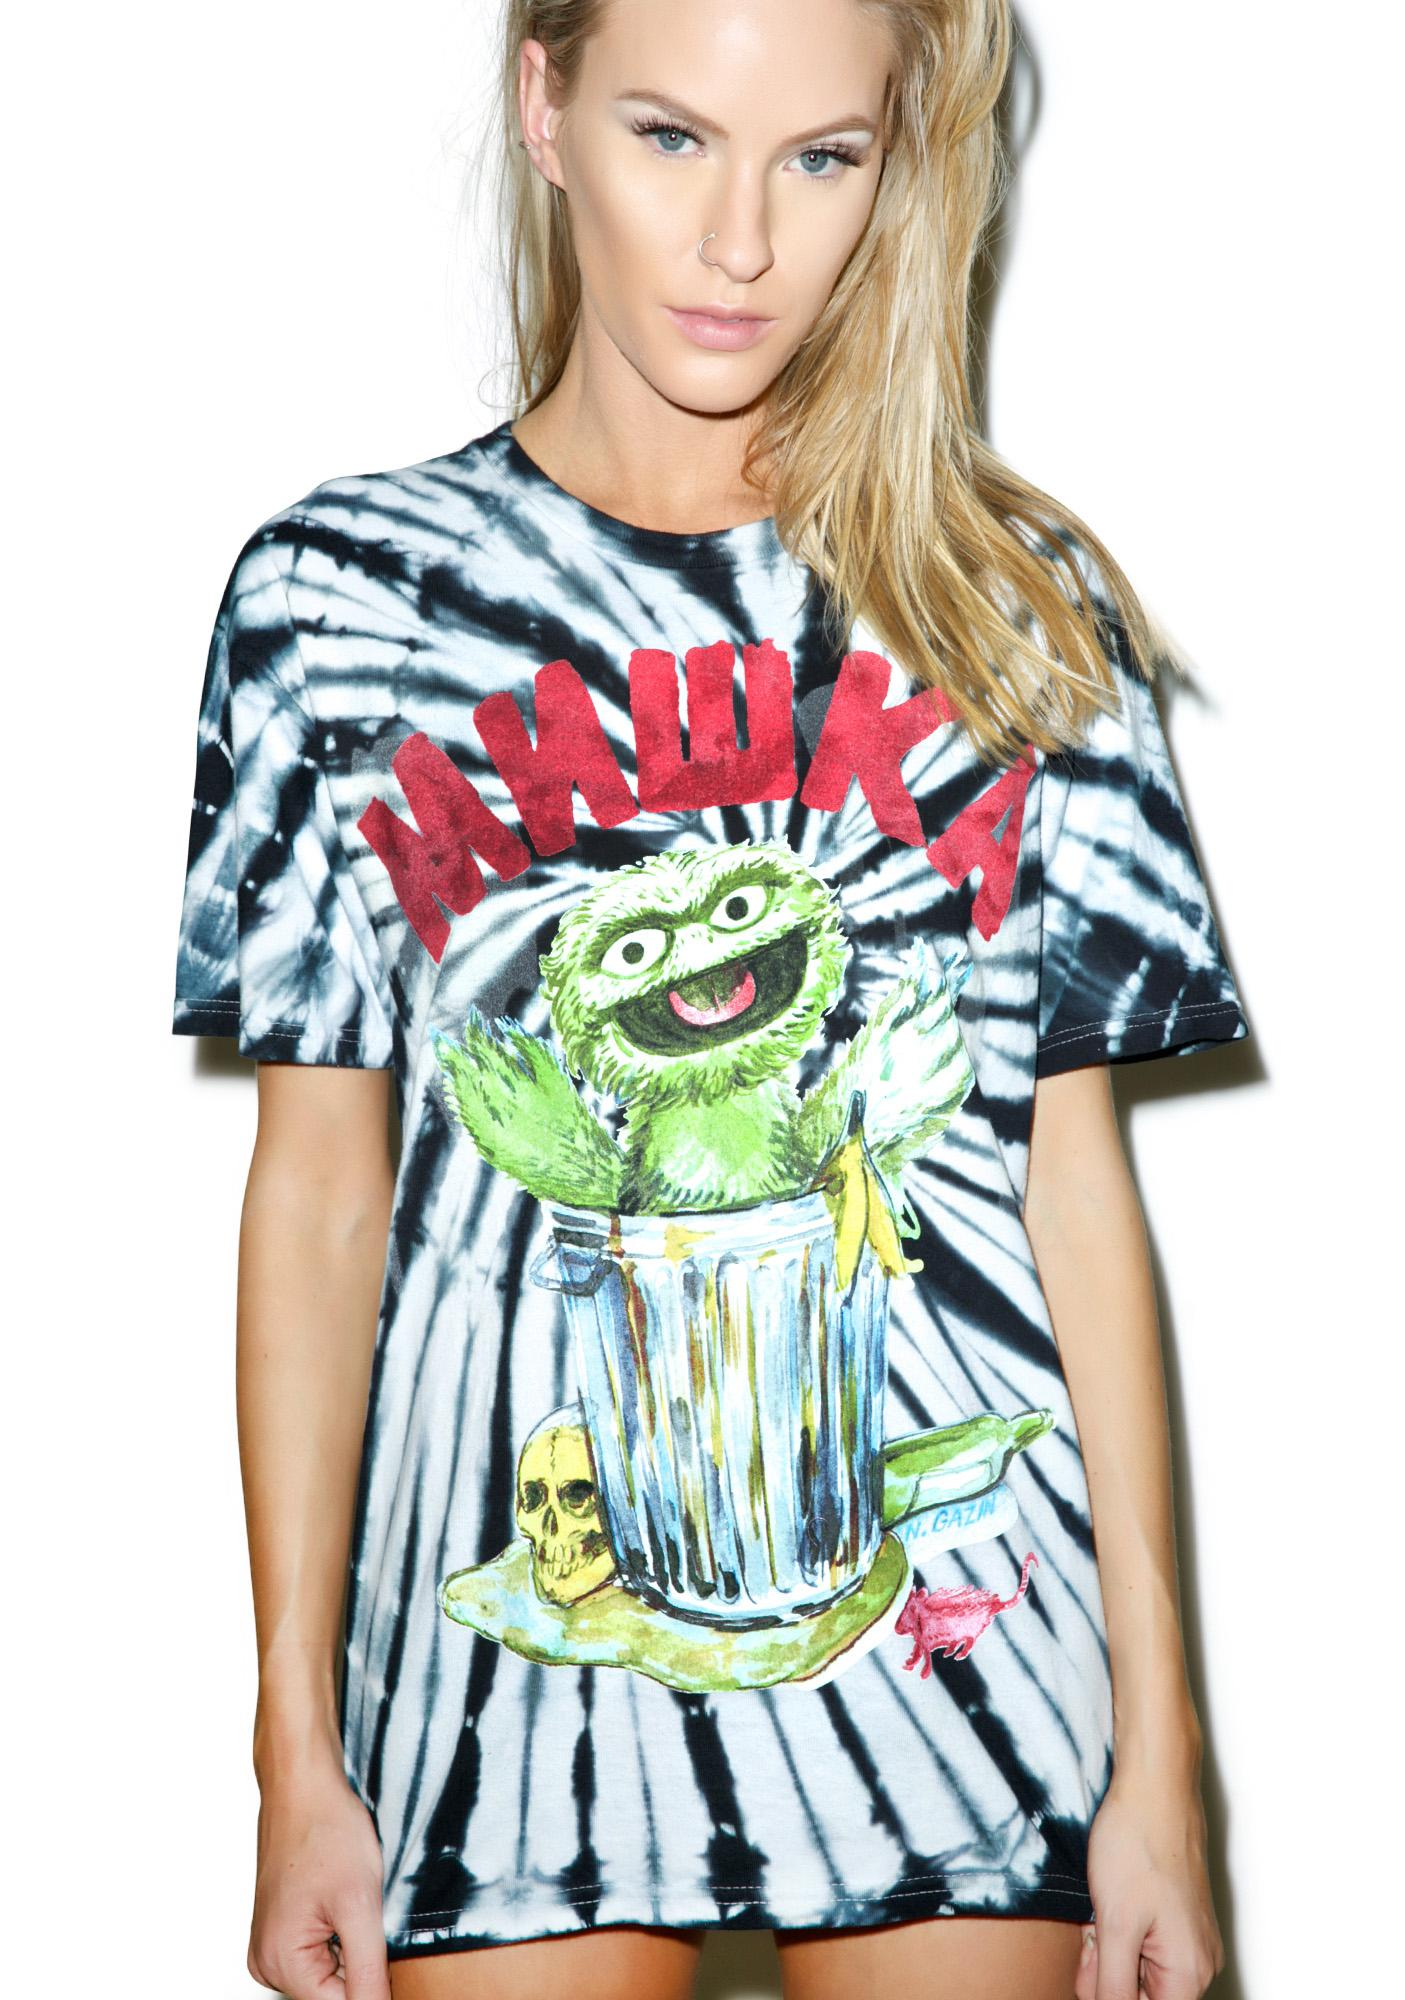 Mishka Oscar The Grouch Tee